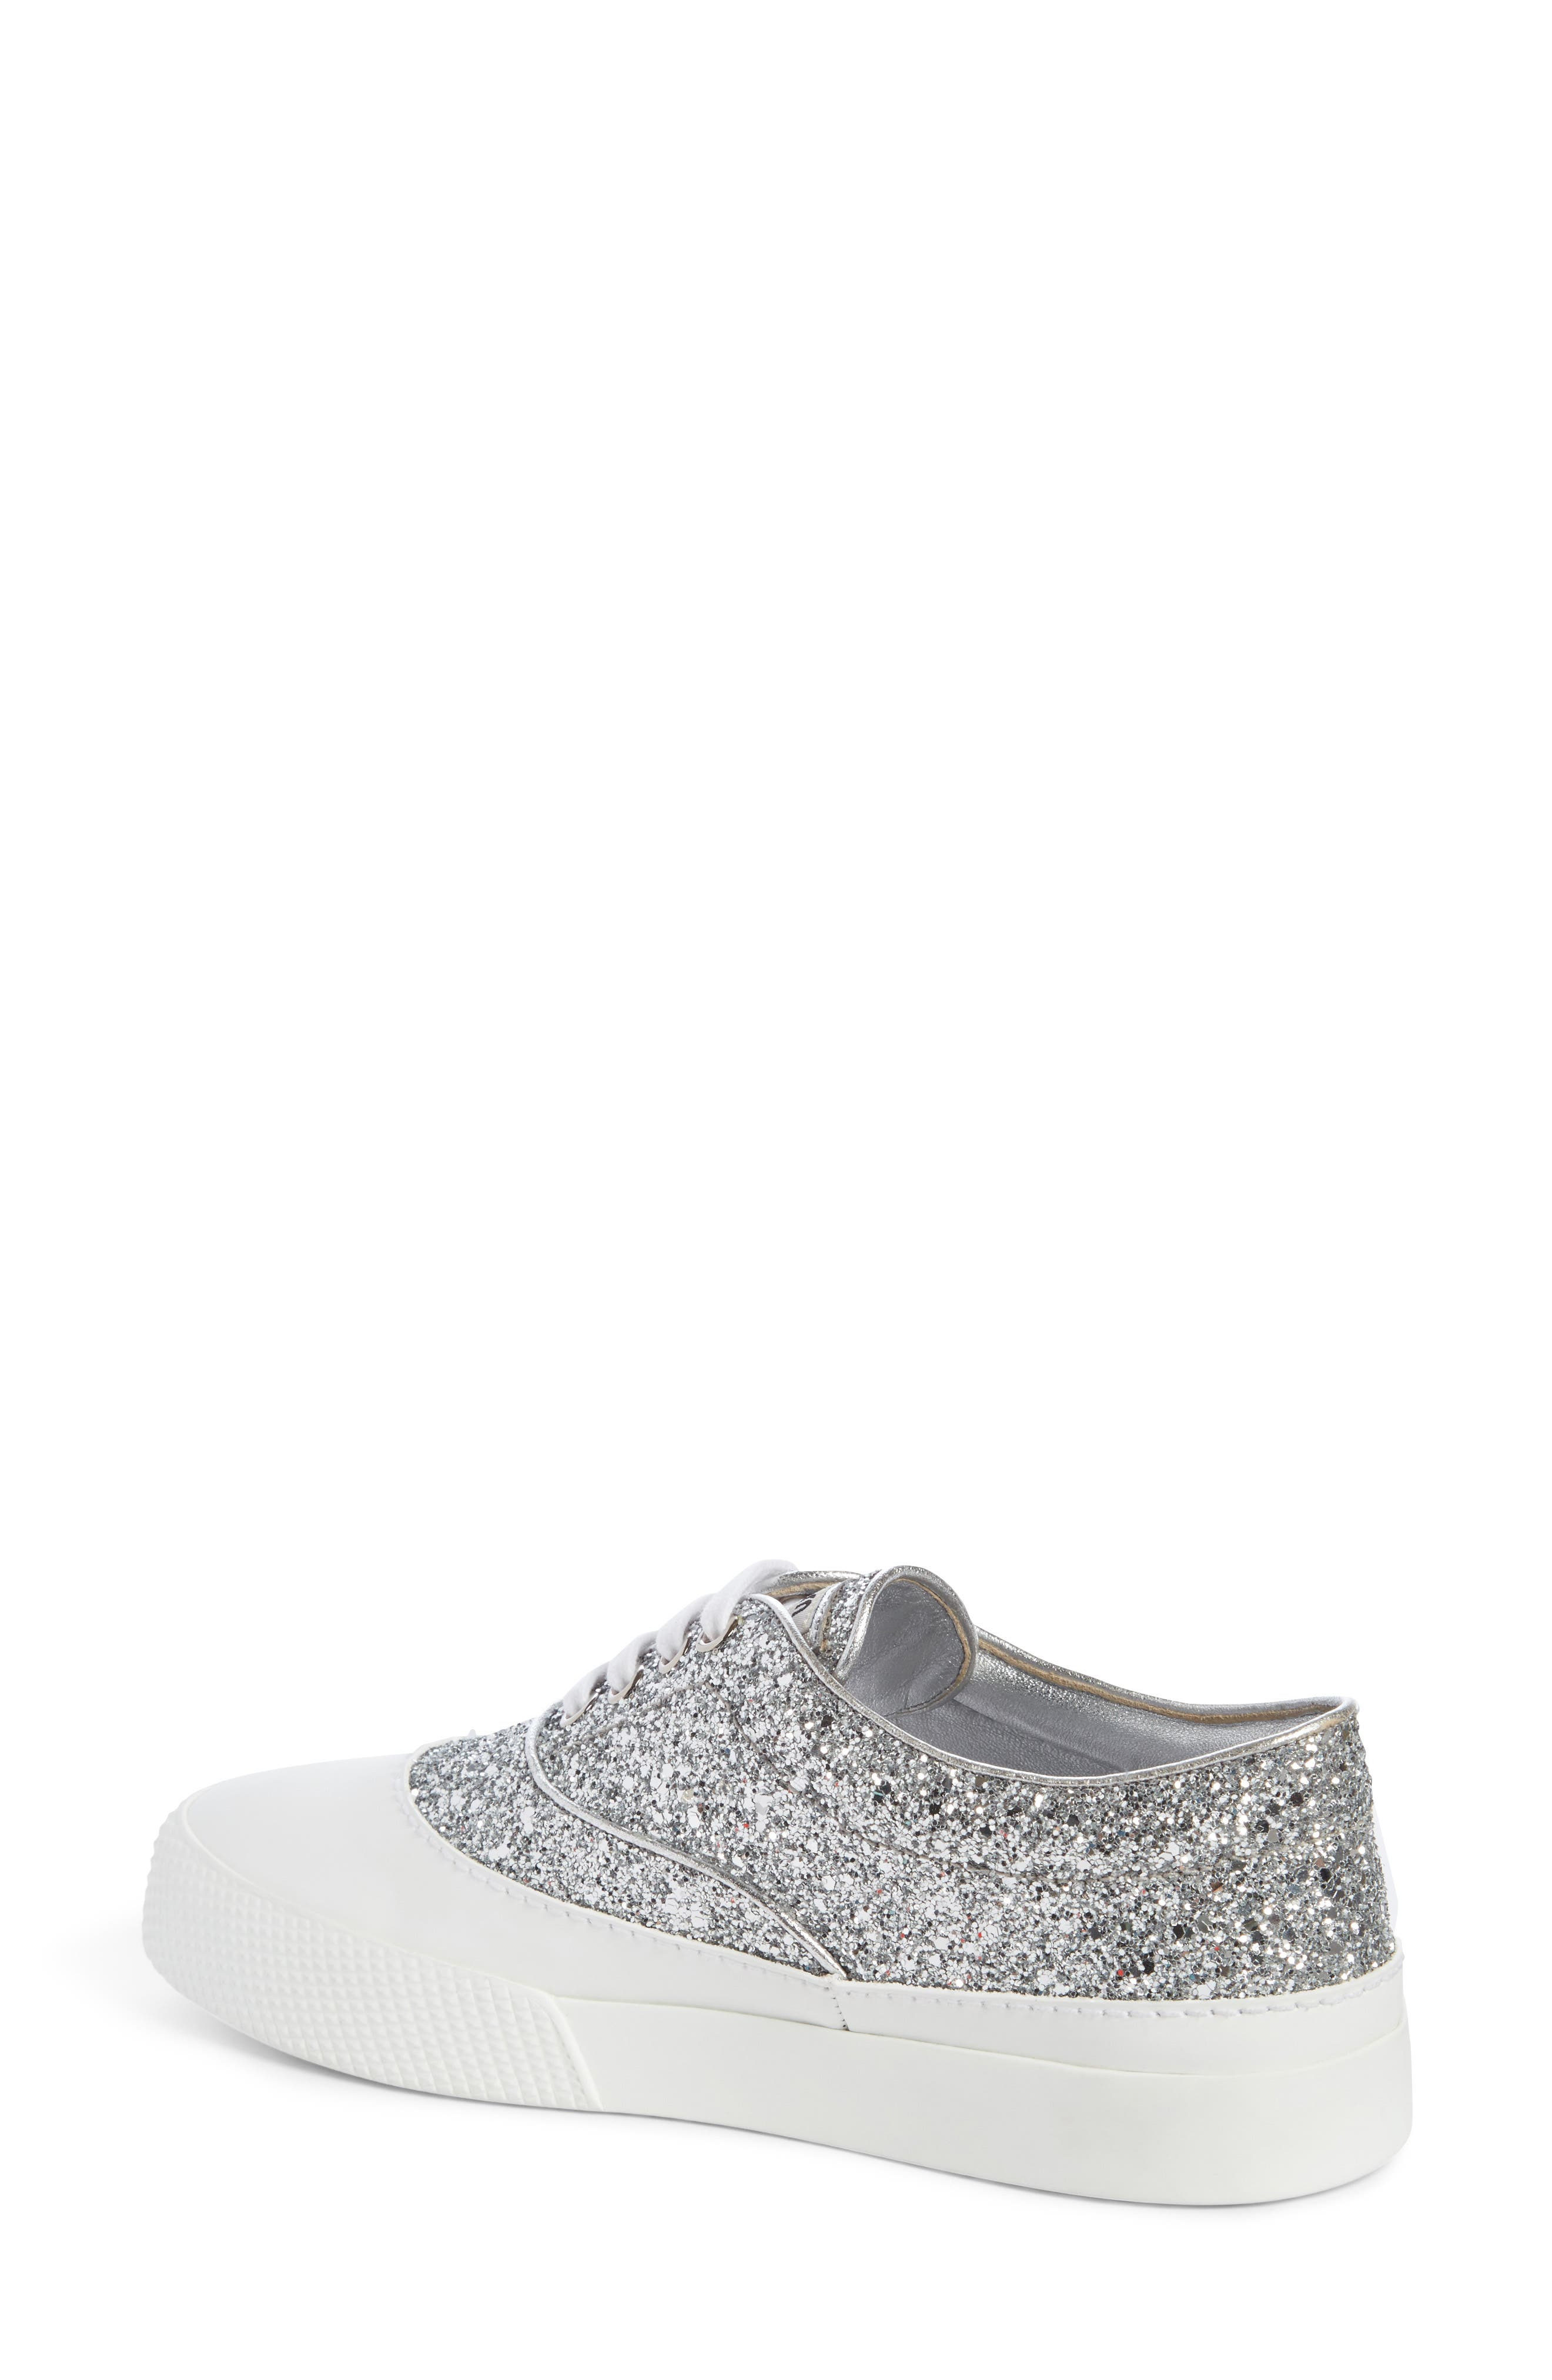 Beaded Glitter Lace-Up Sneaker,                             Alternate thumbnail 2, color,                             100